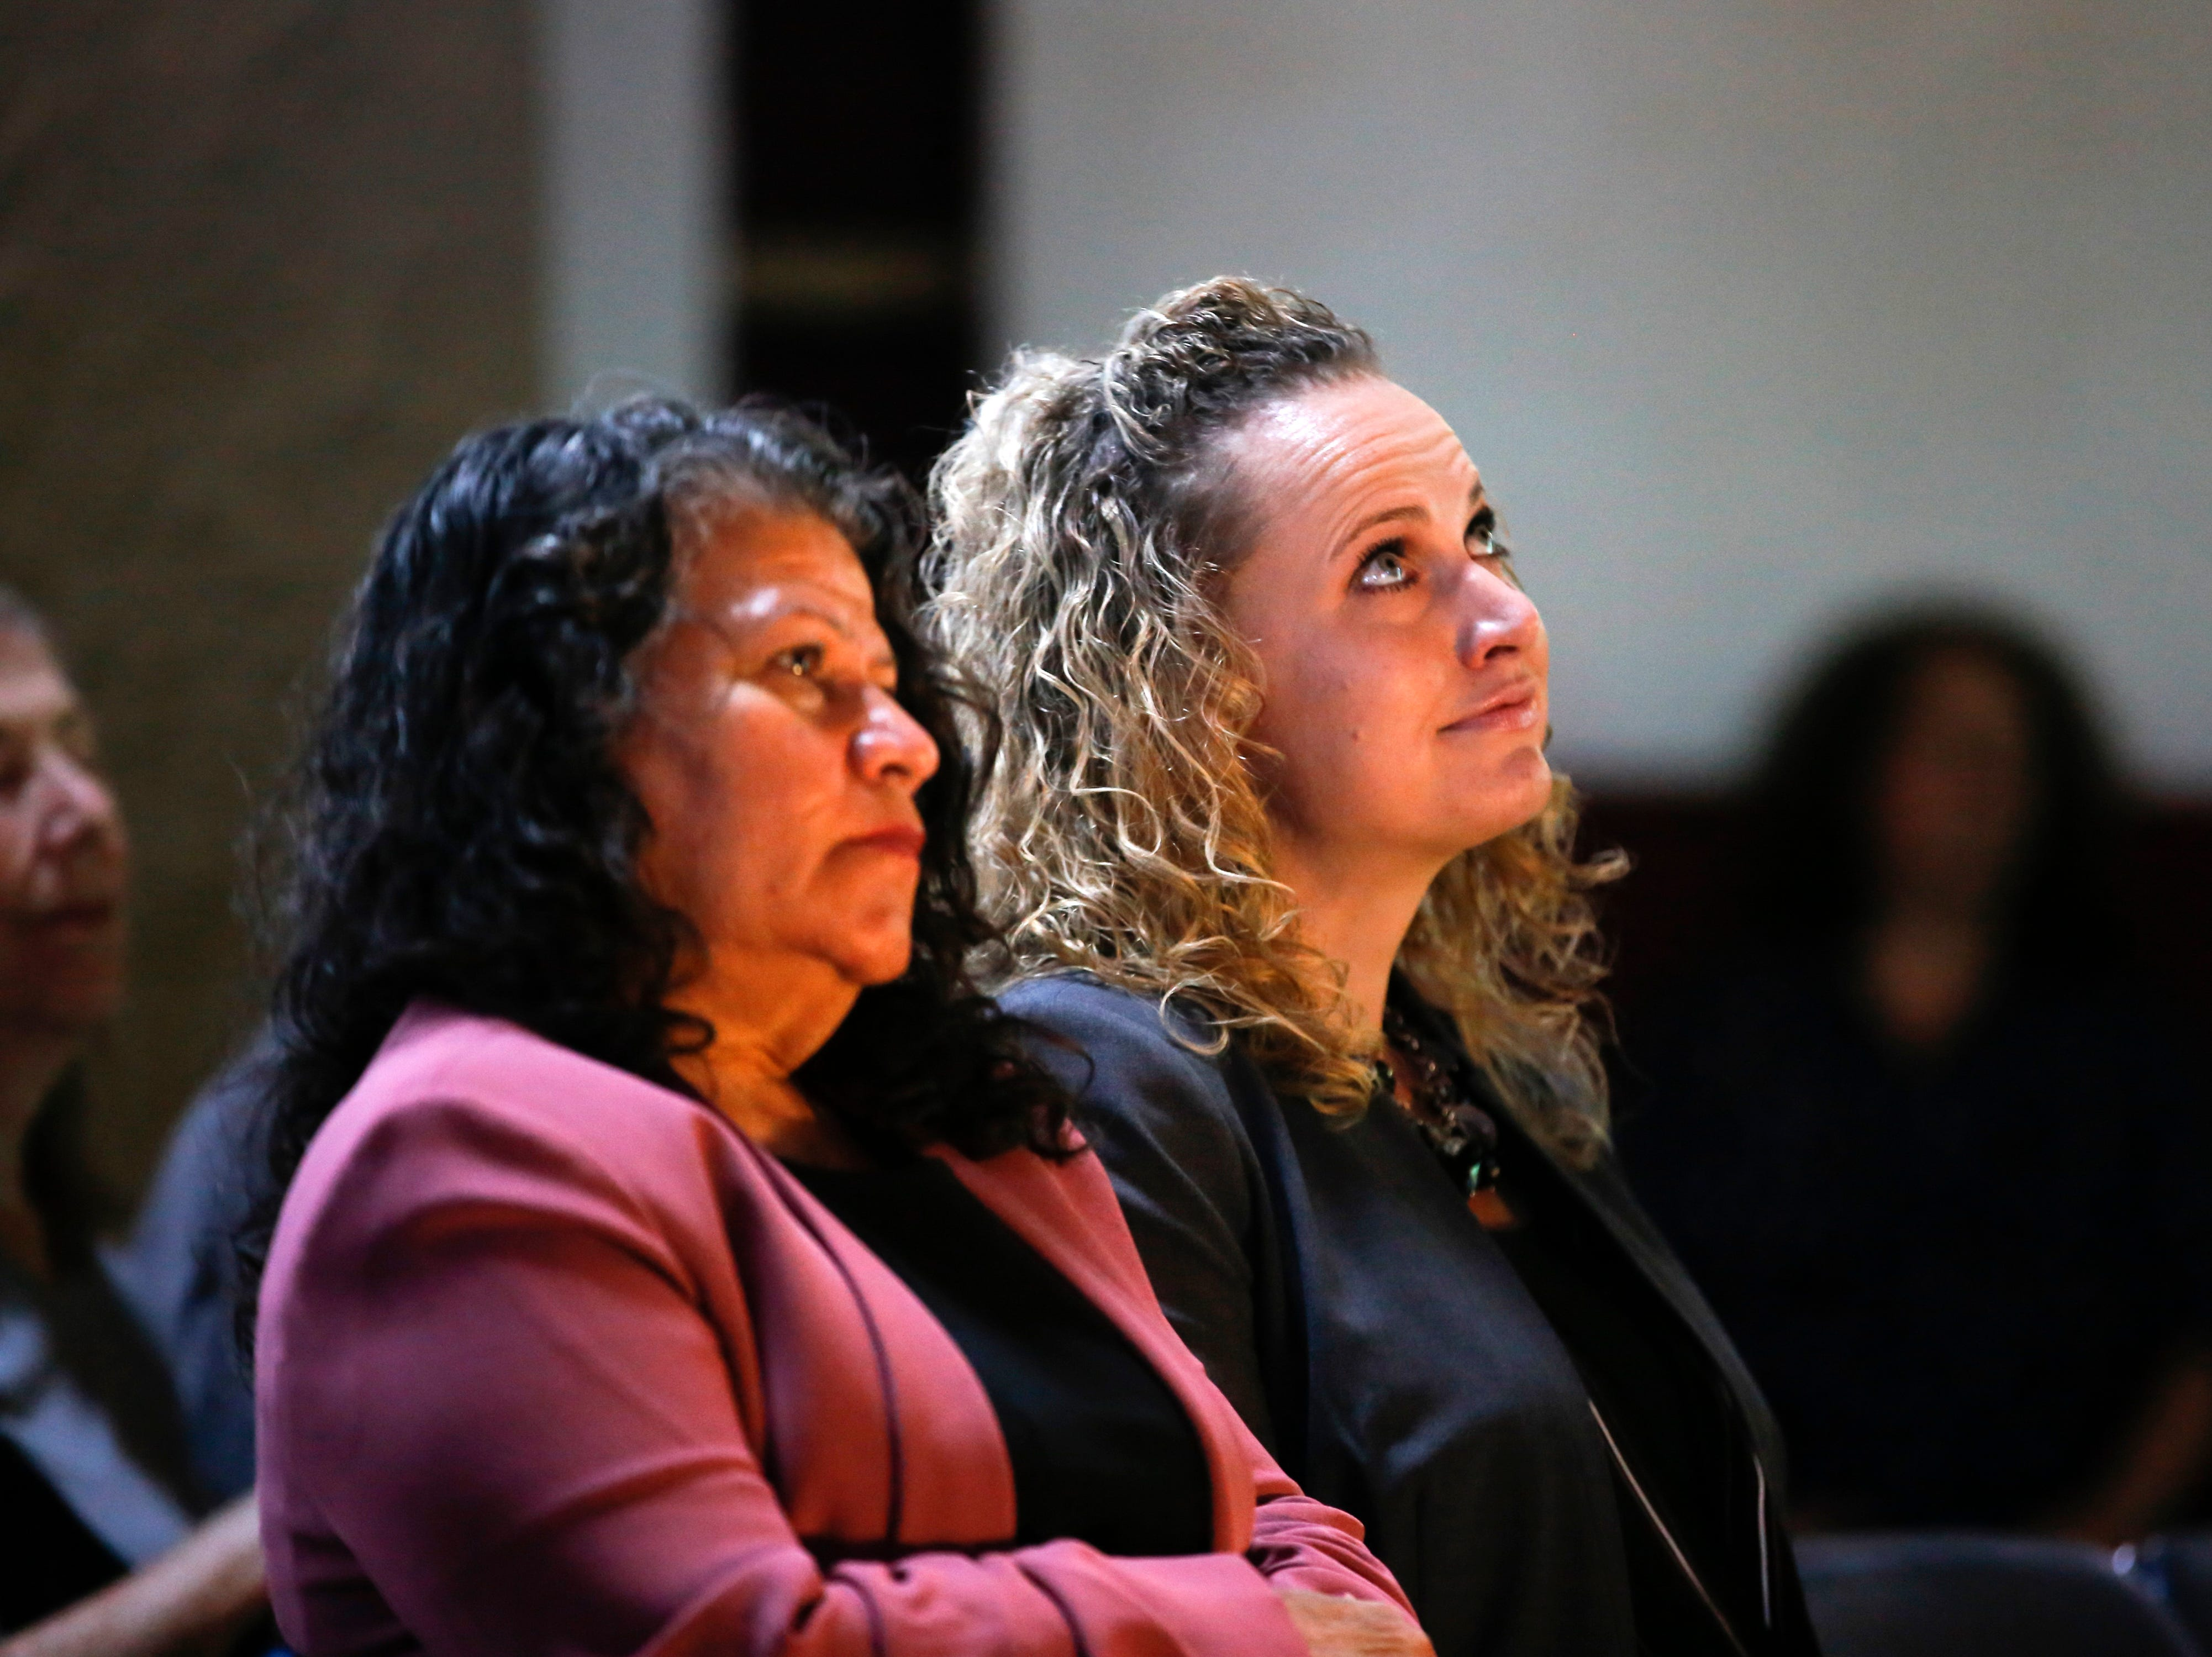 From left, Isela Imelda Baca de Polanco and Daniella Marie Montano Friday, Sept. 28, 2018 during a naturalization ceremony at the Aztec Ruins National Monument.